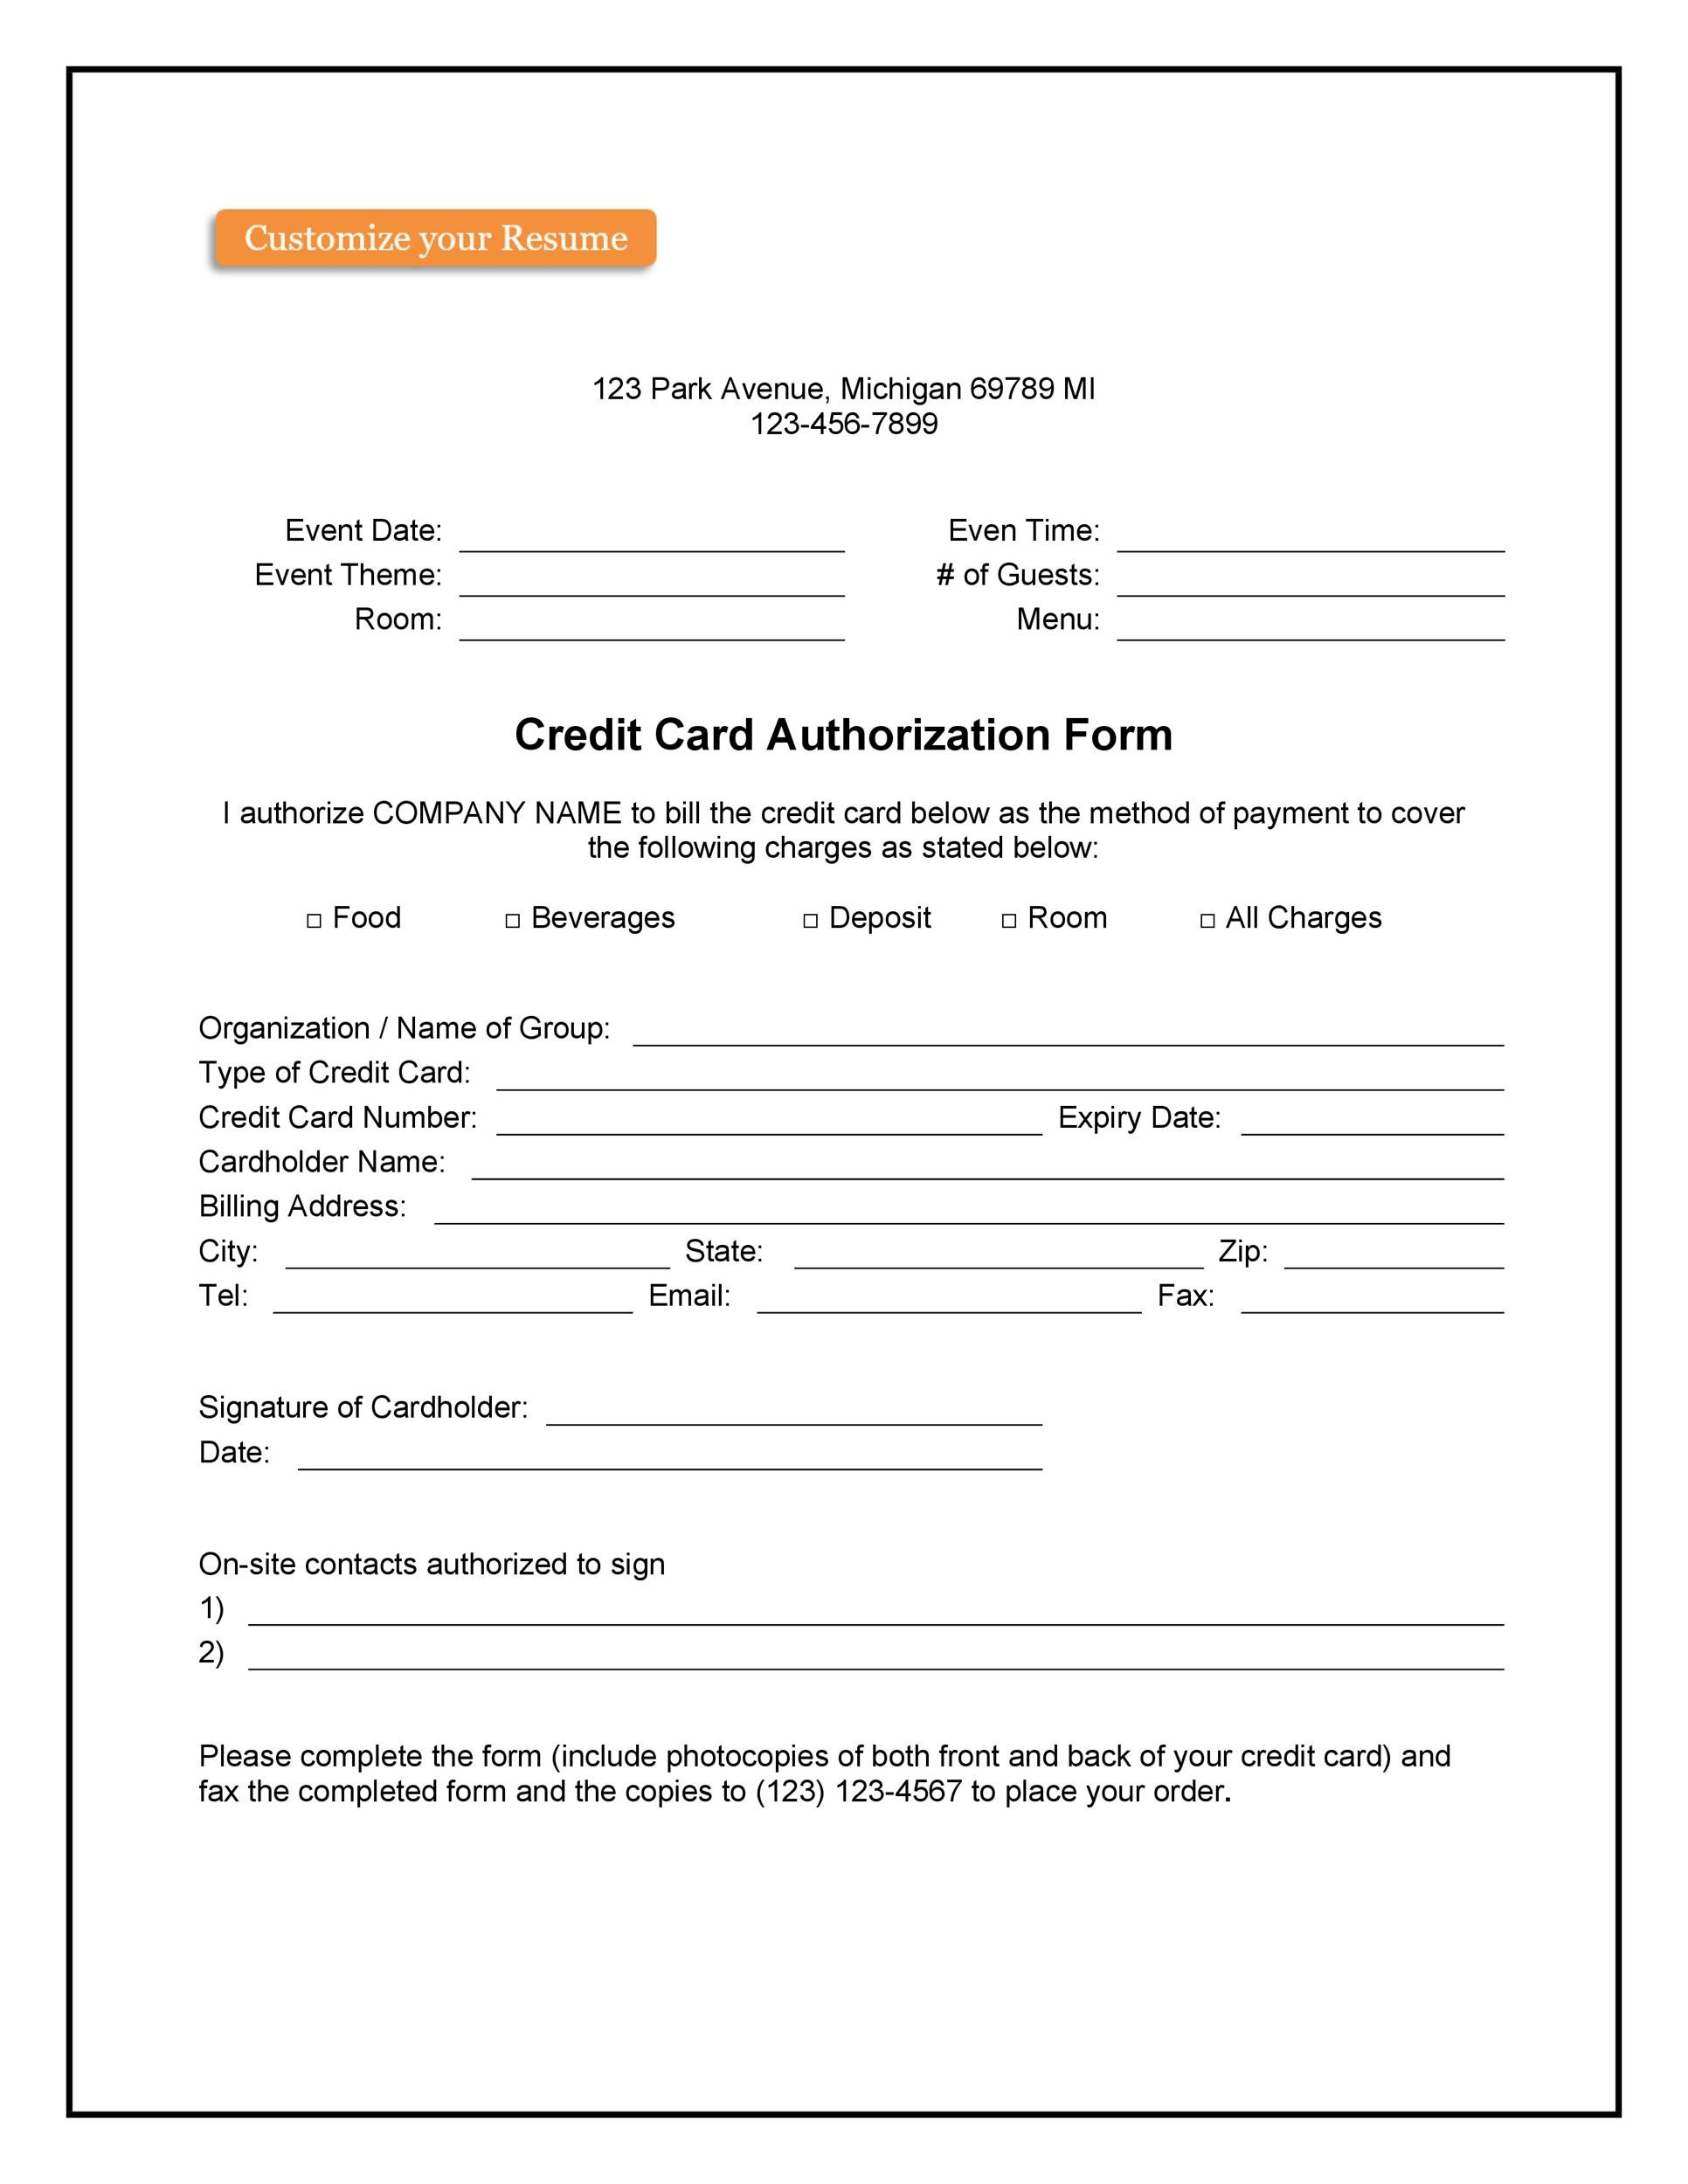 41 credit card authorization forms templates  ready